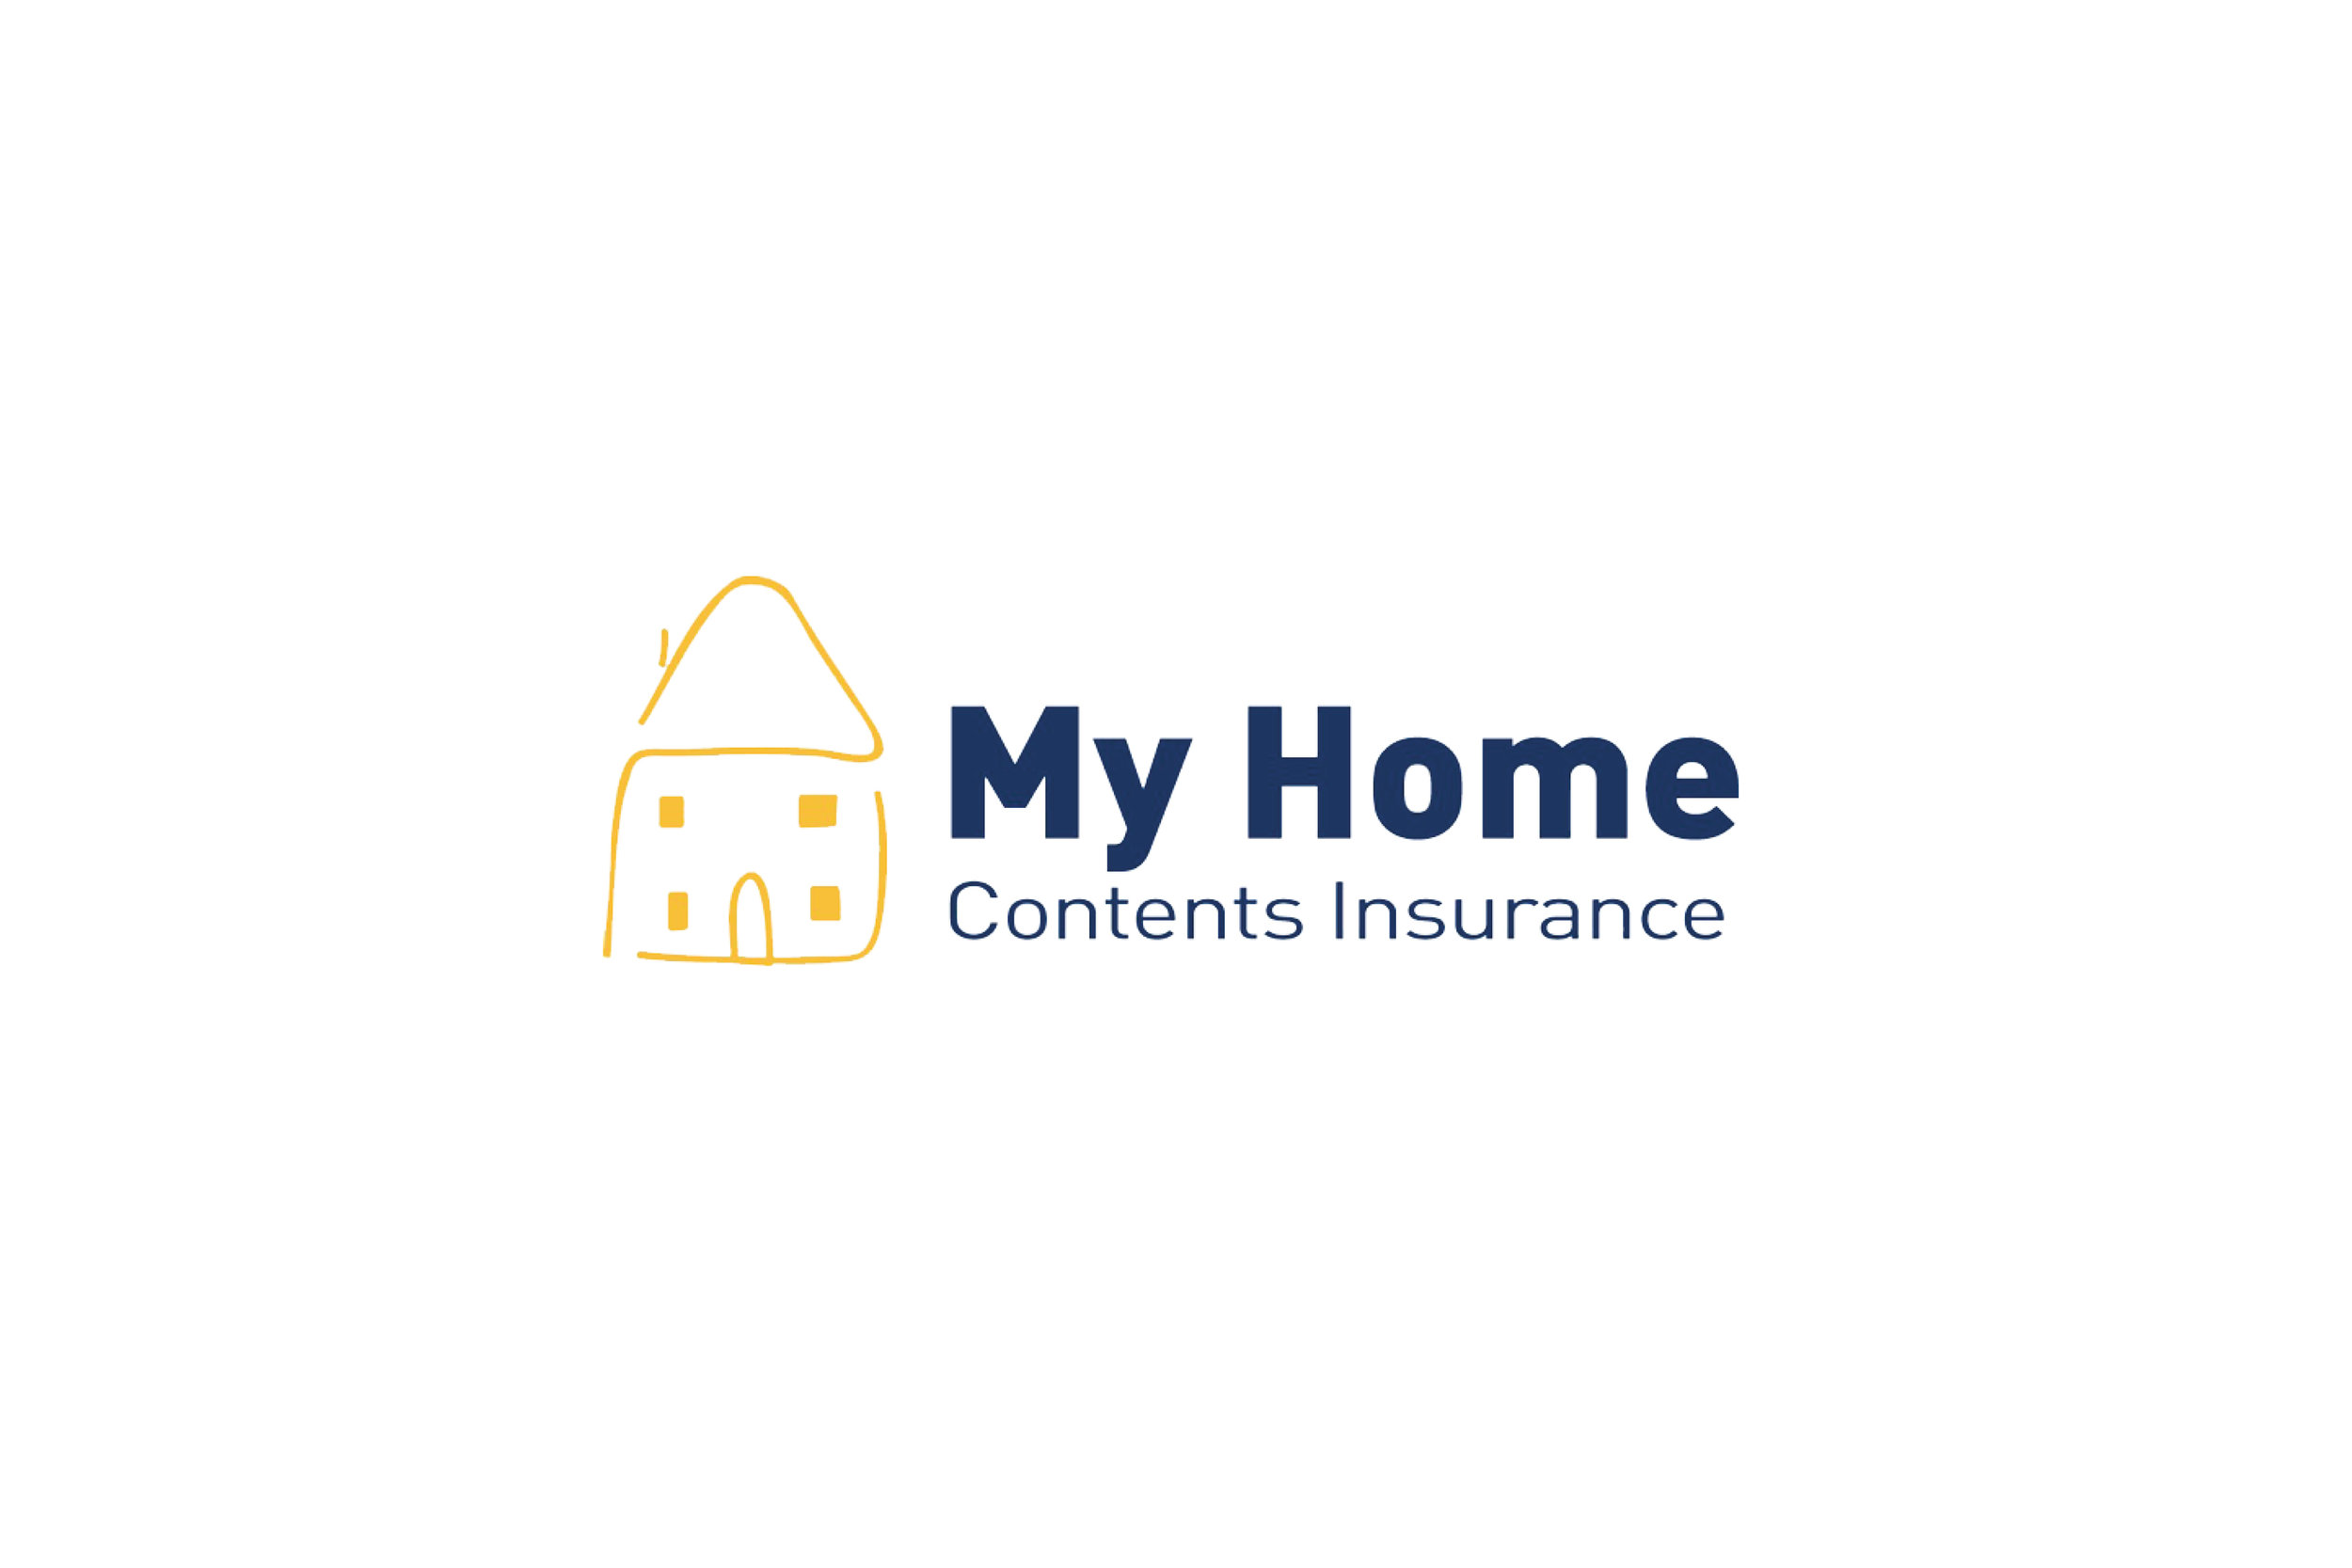 HomeContentsInsurance.jpg